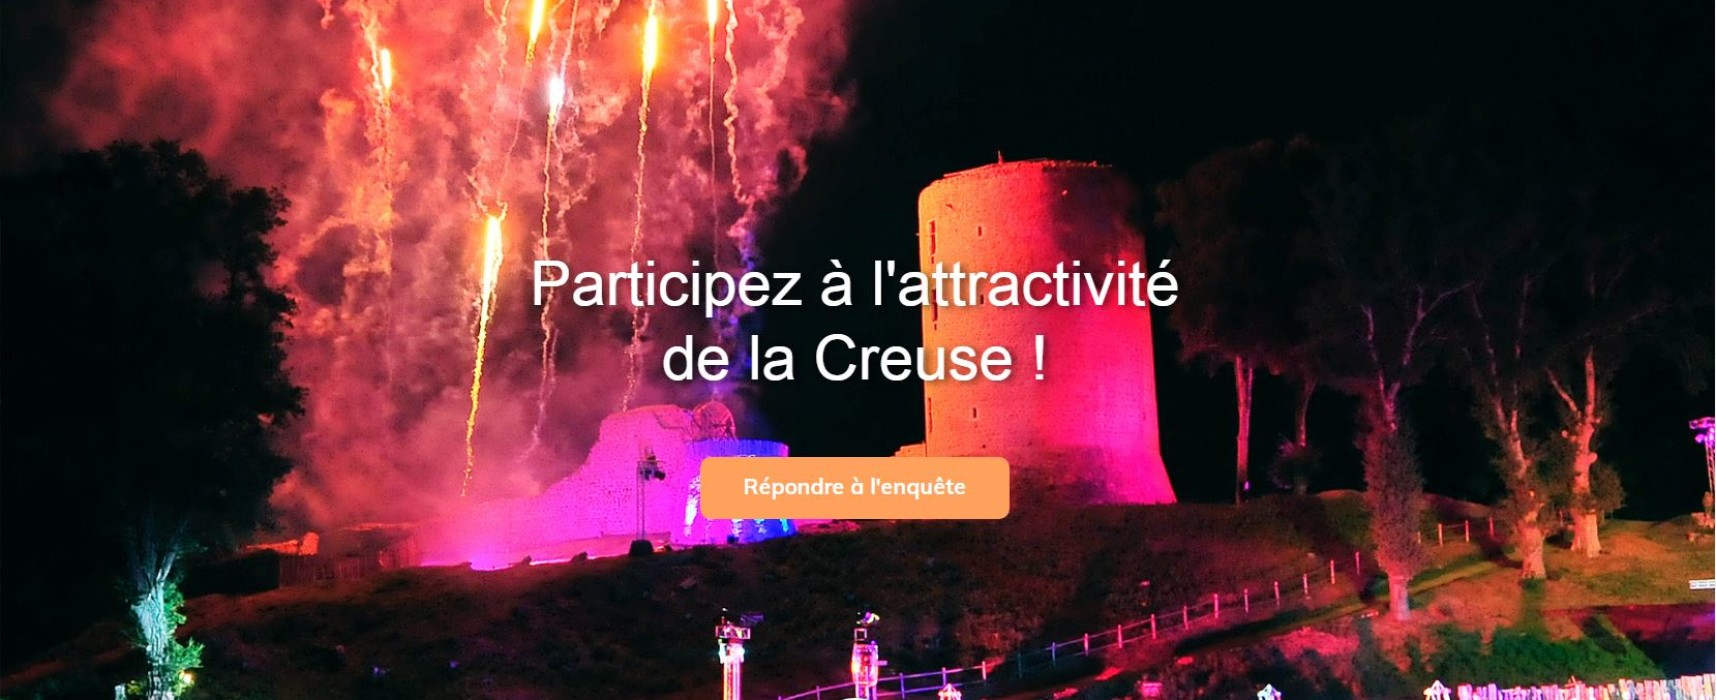 Participez à l'attractivité de la Creuse !